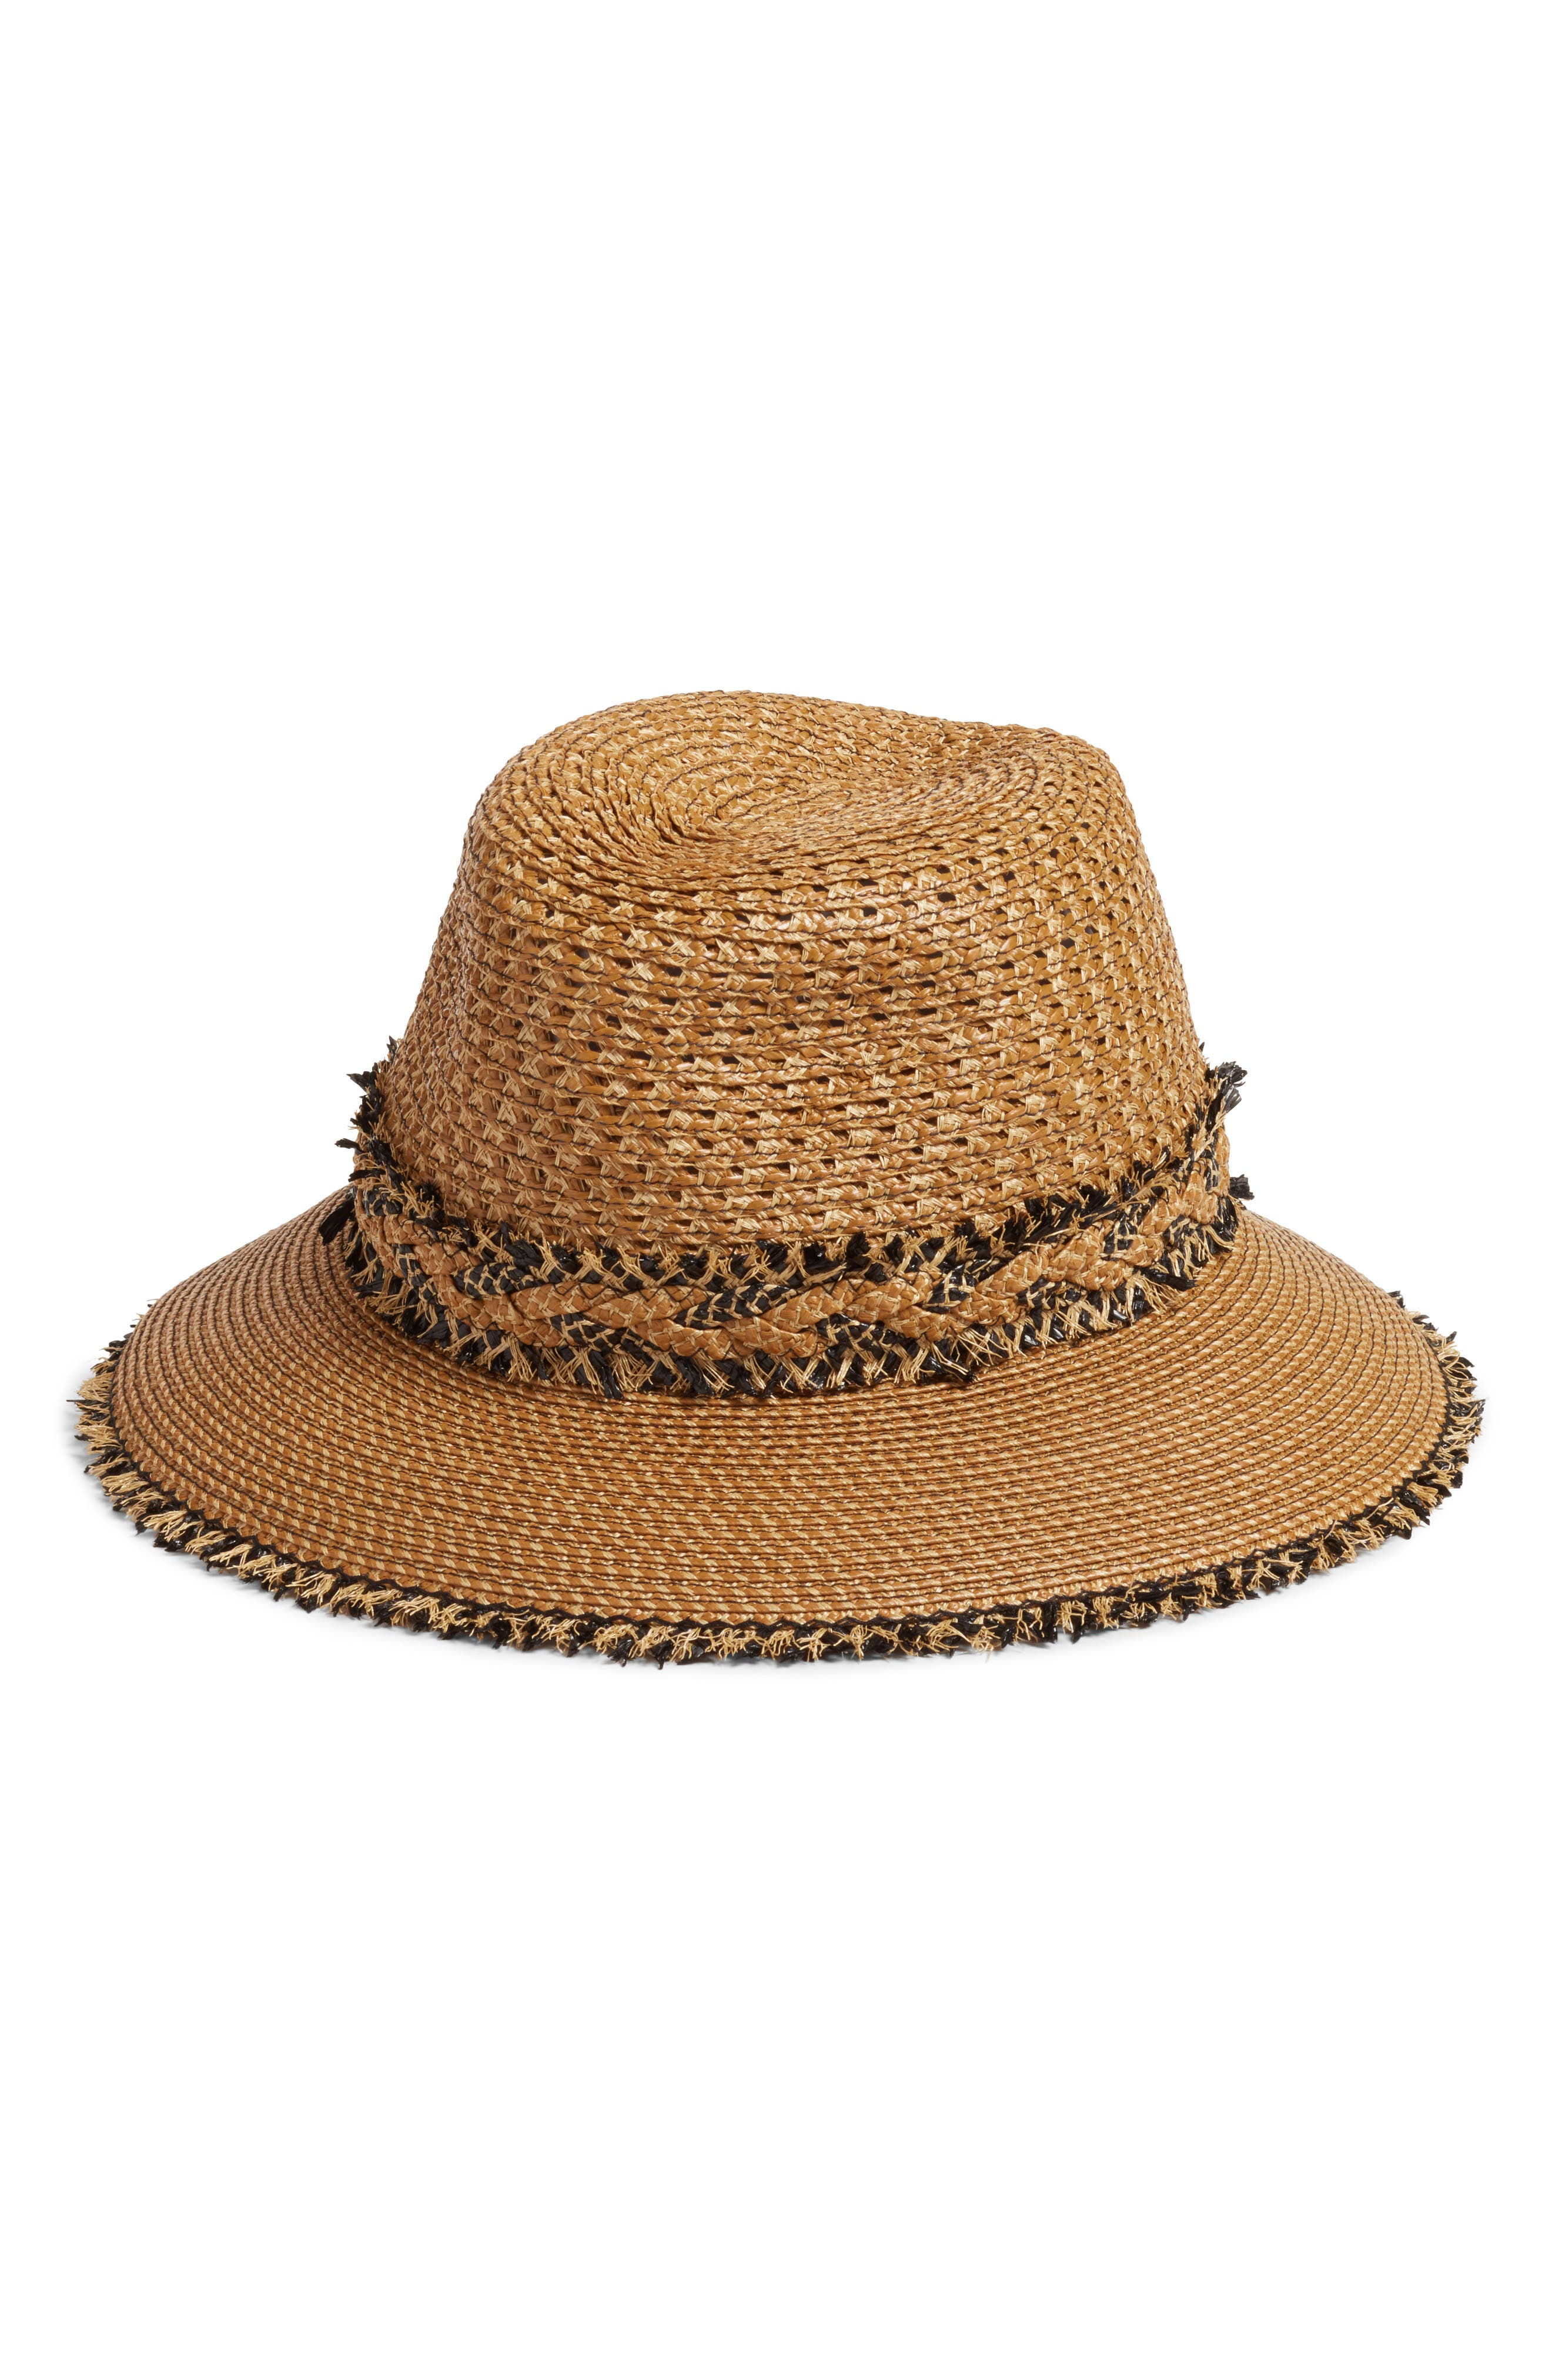 Lulu Squishee<sup>®</sup> Straw Hat,                         Main,                         color, Natural/ Black Mix